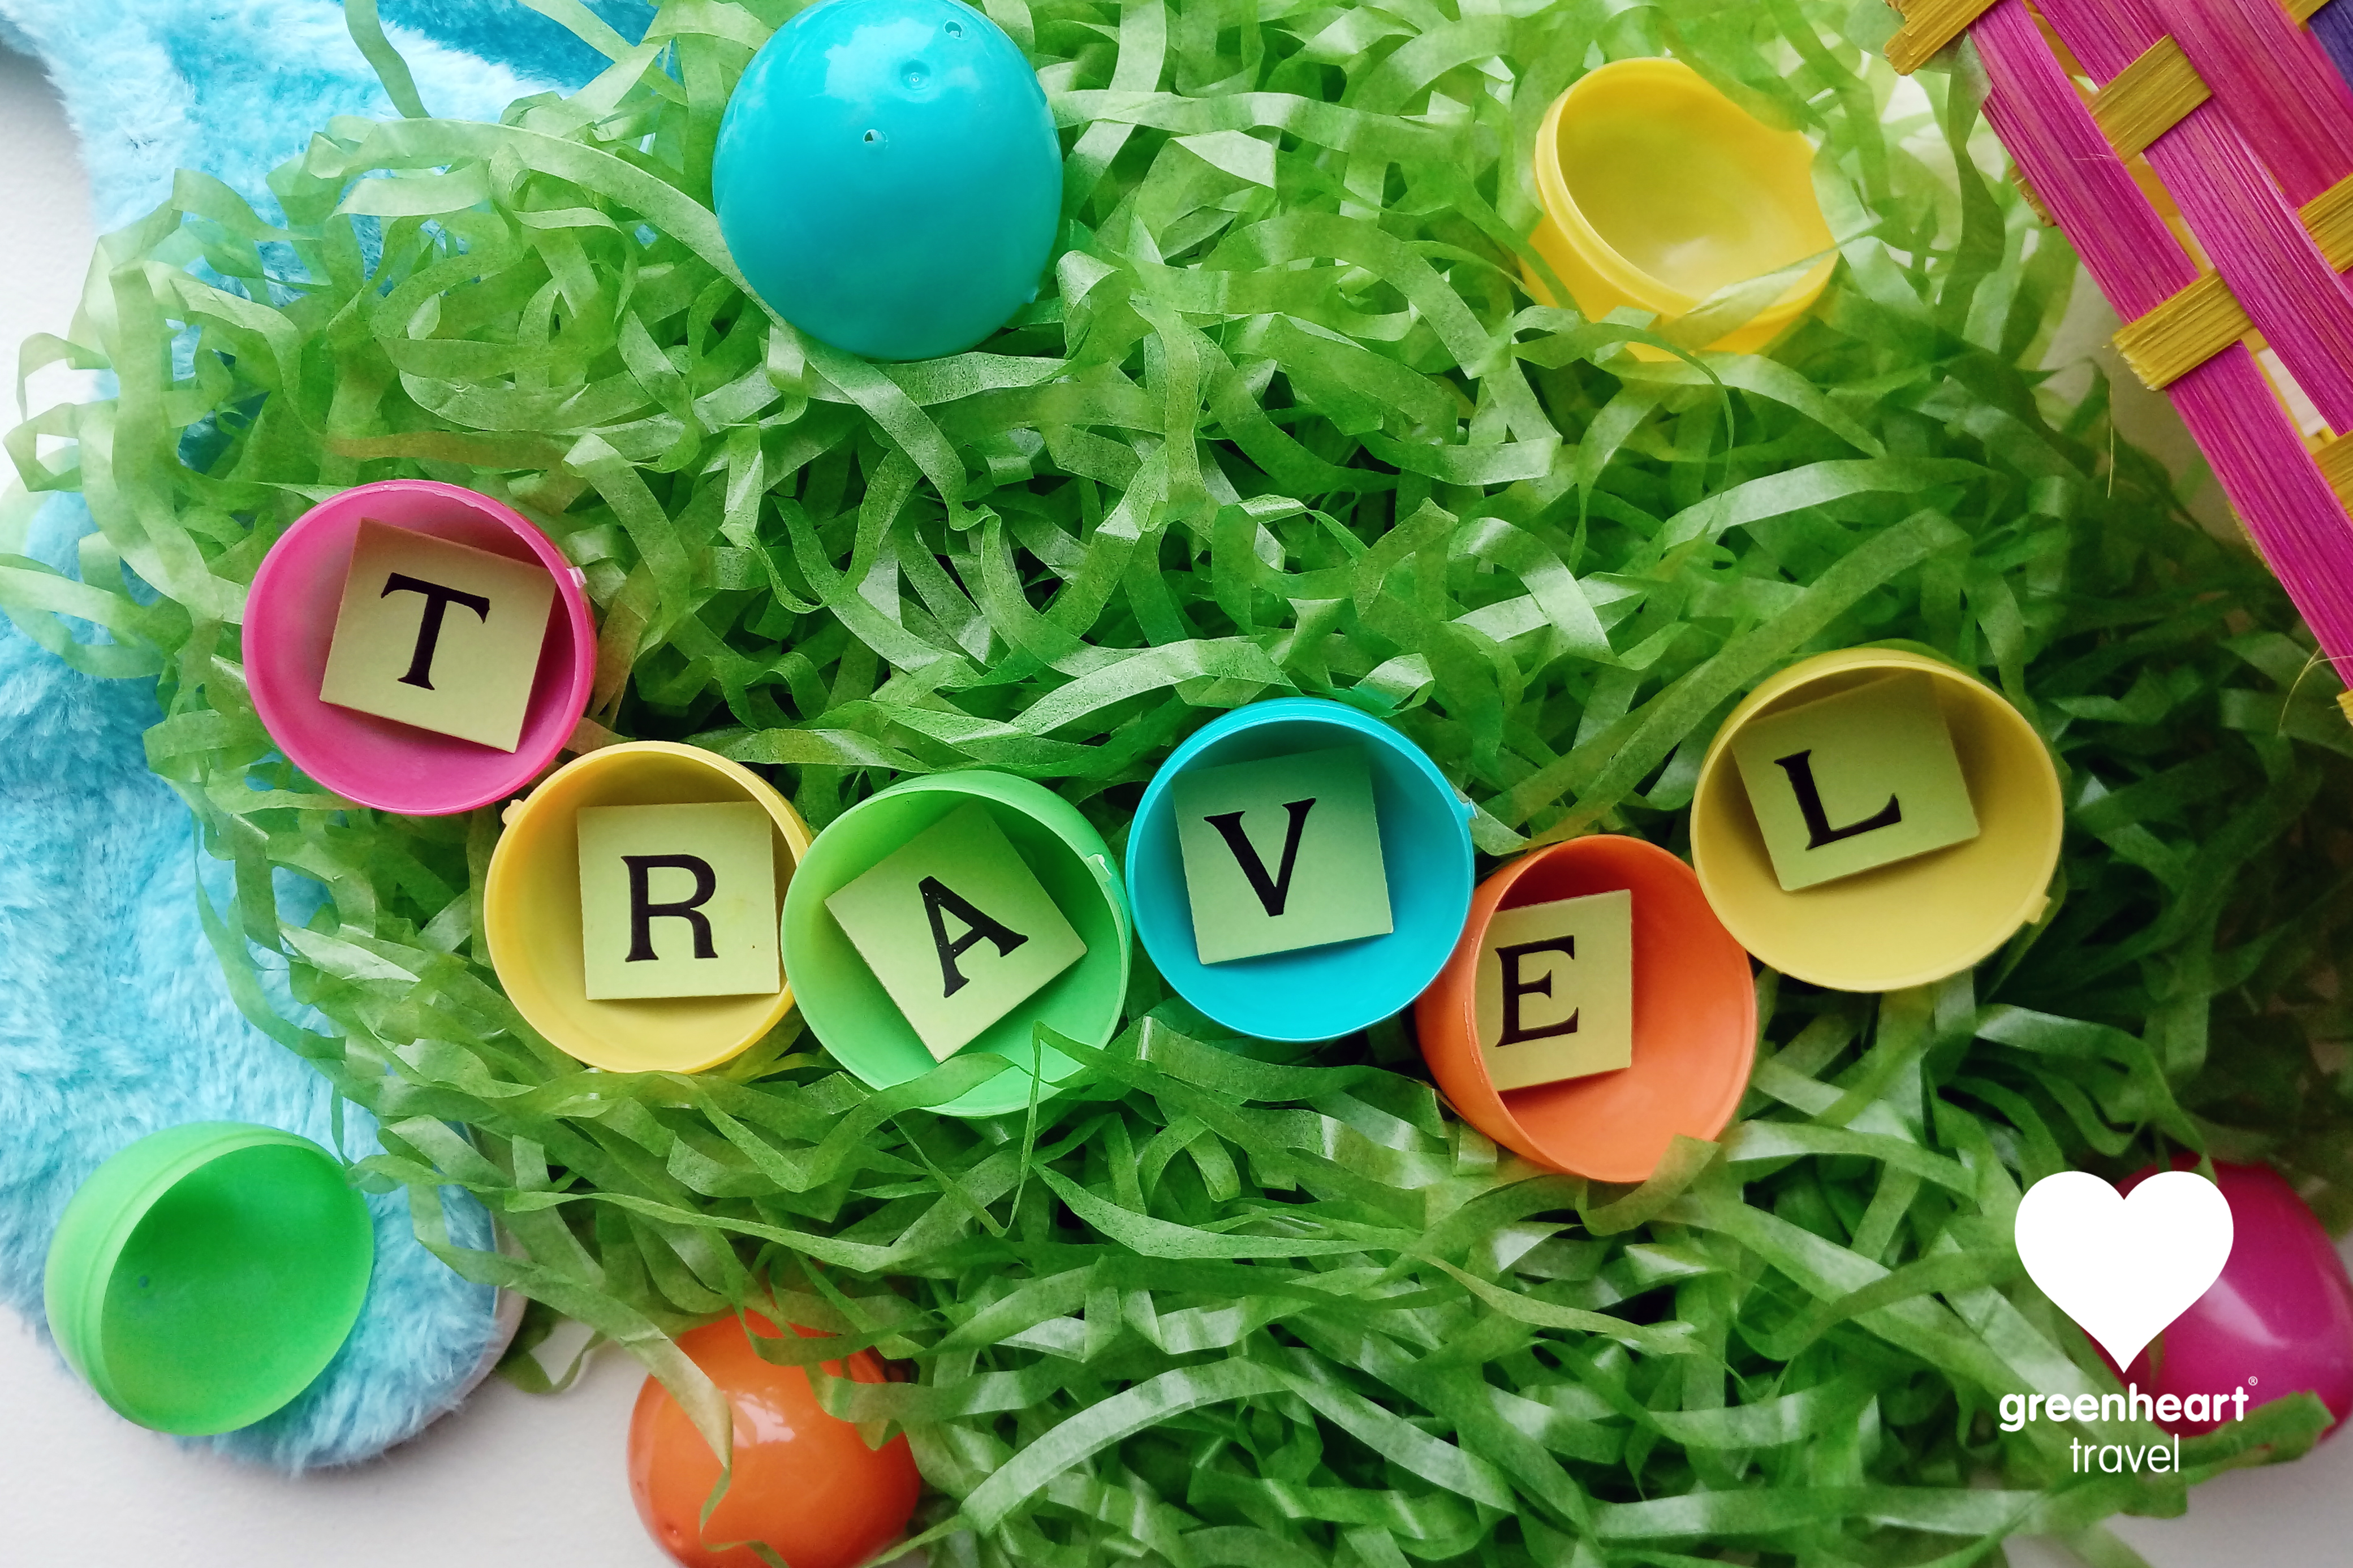 Greenheart Travel's Easter Promotion